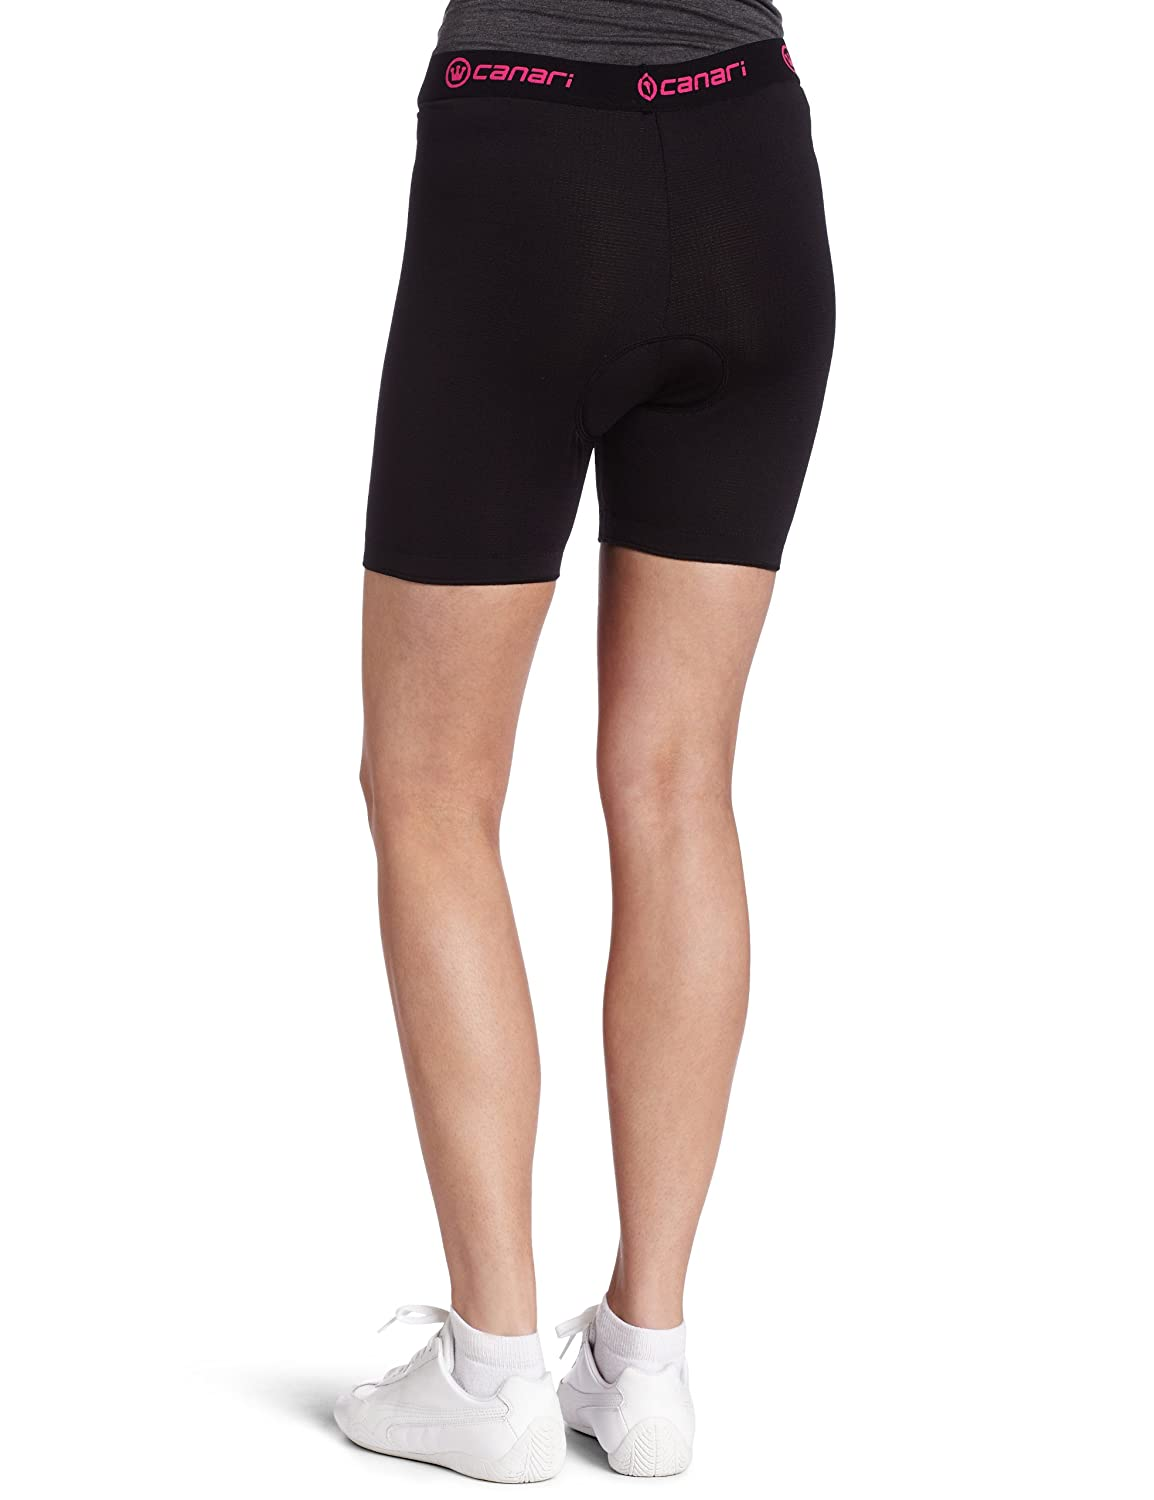 7f51e555283f Amazon.com : Canari Cyclewear Women's Gel Cycle Liner Padded Cycling Brief  : Cycling Compression Shorts : Clothing